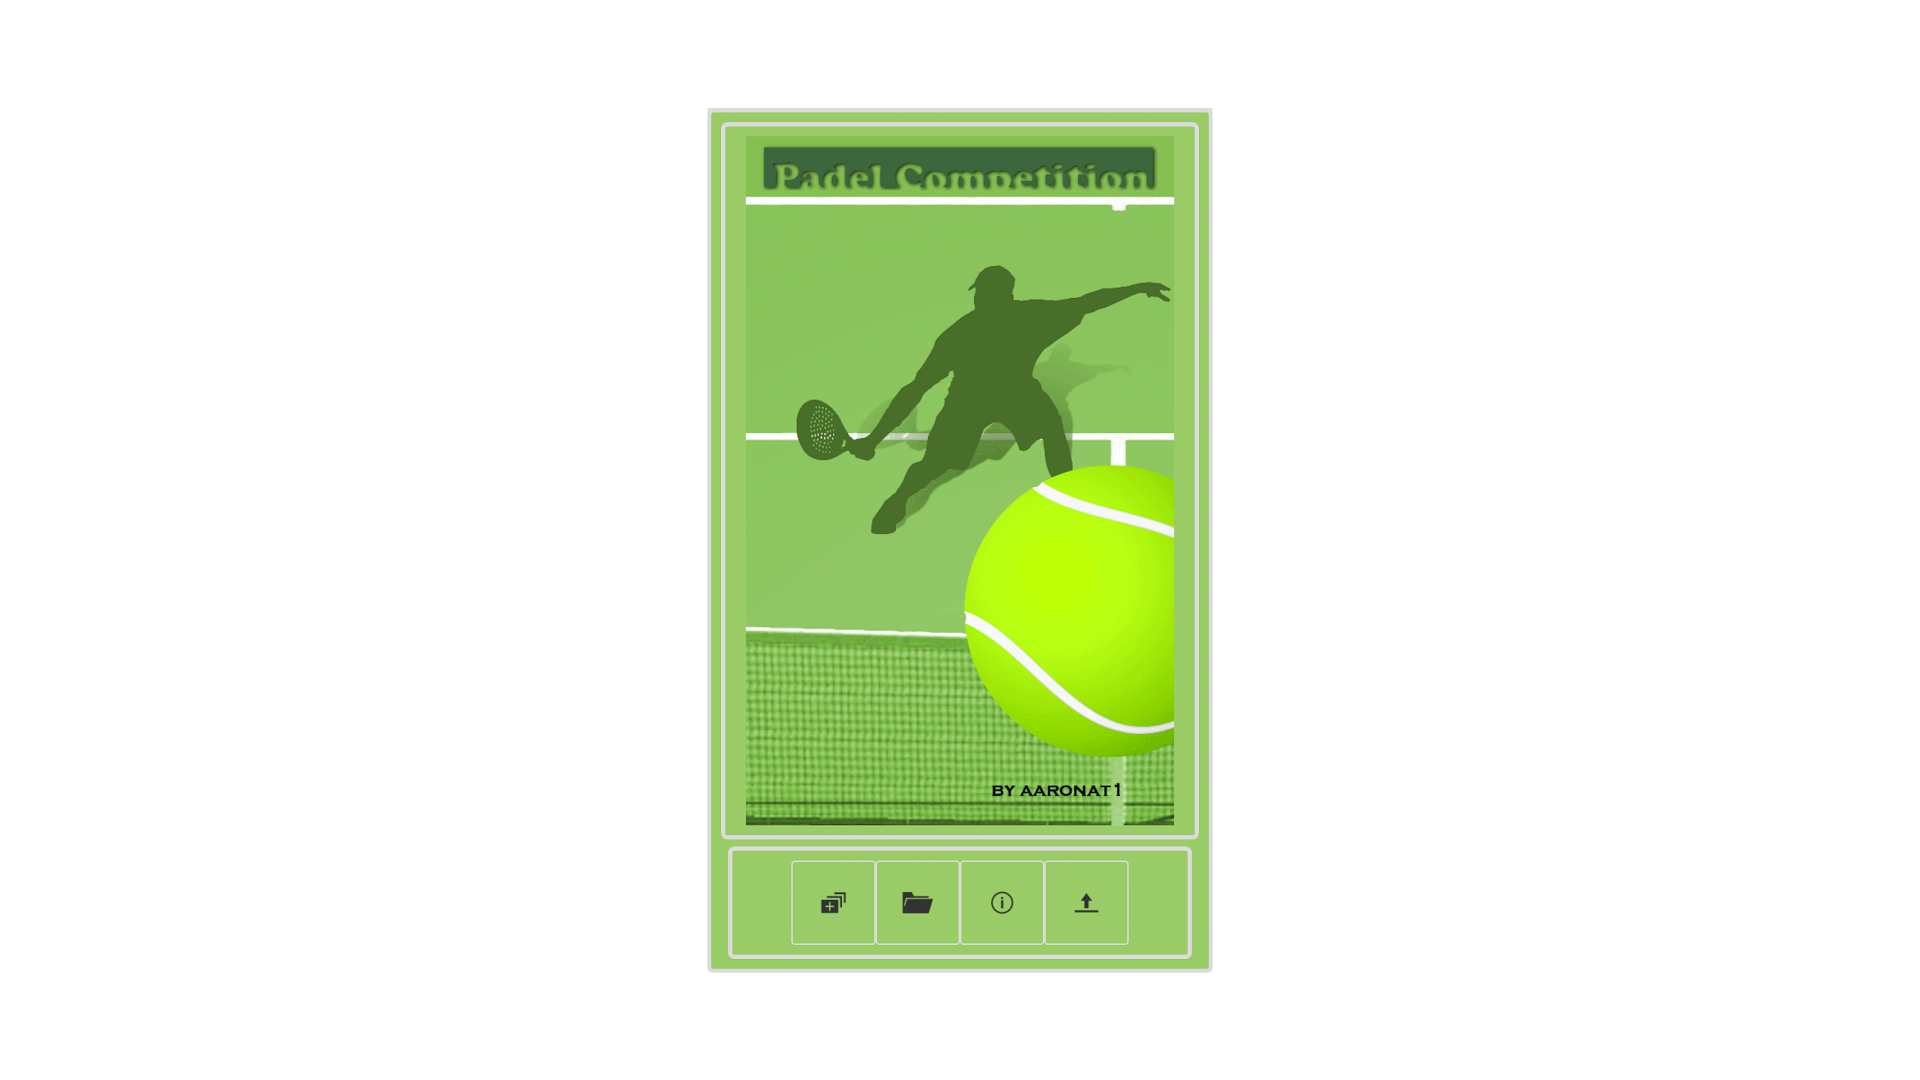 Amazon.com: Padel Competition: Appstore for Android